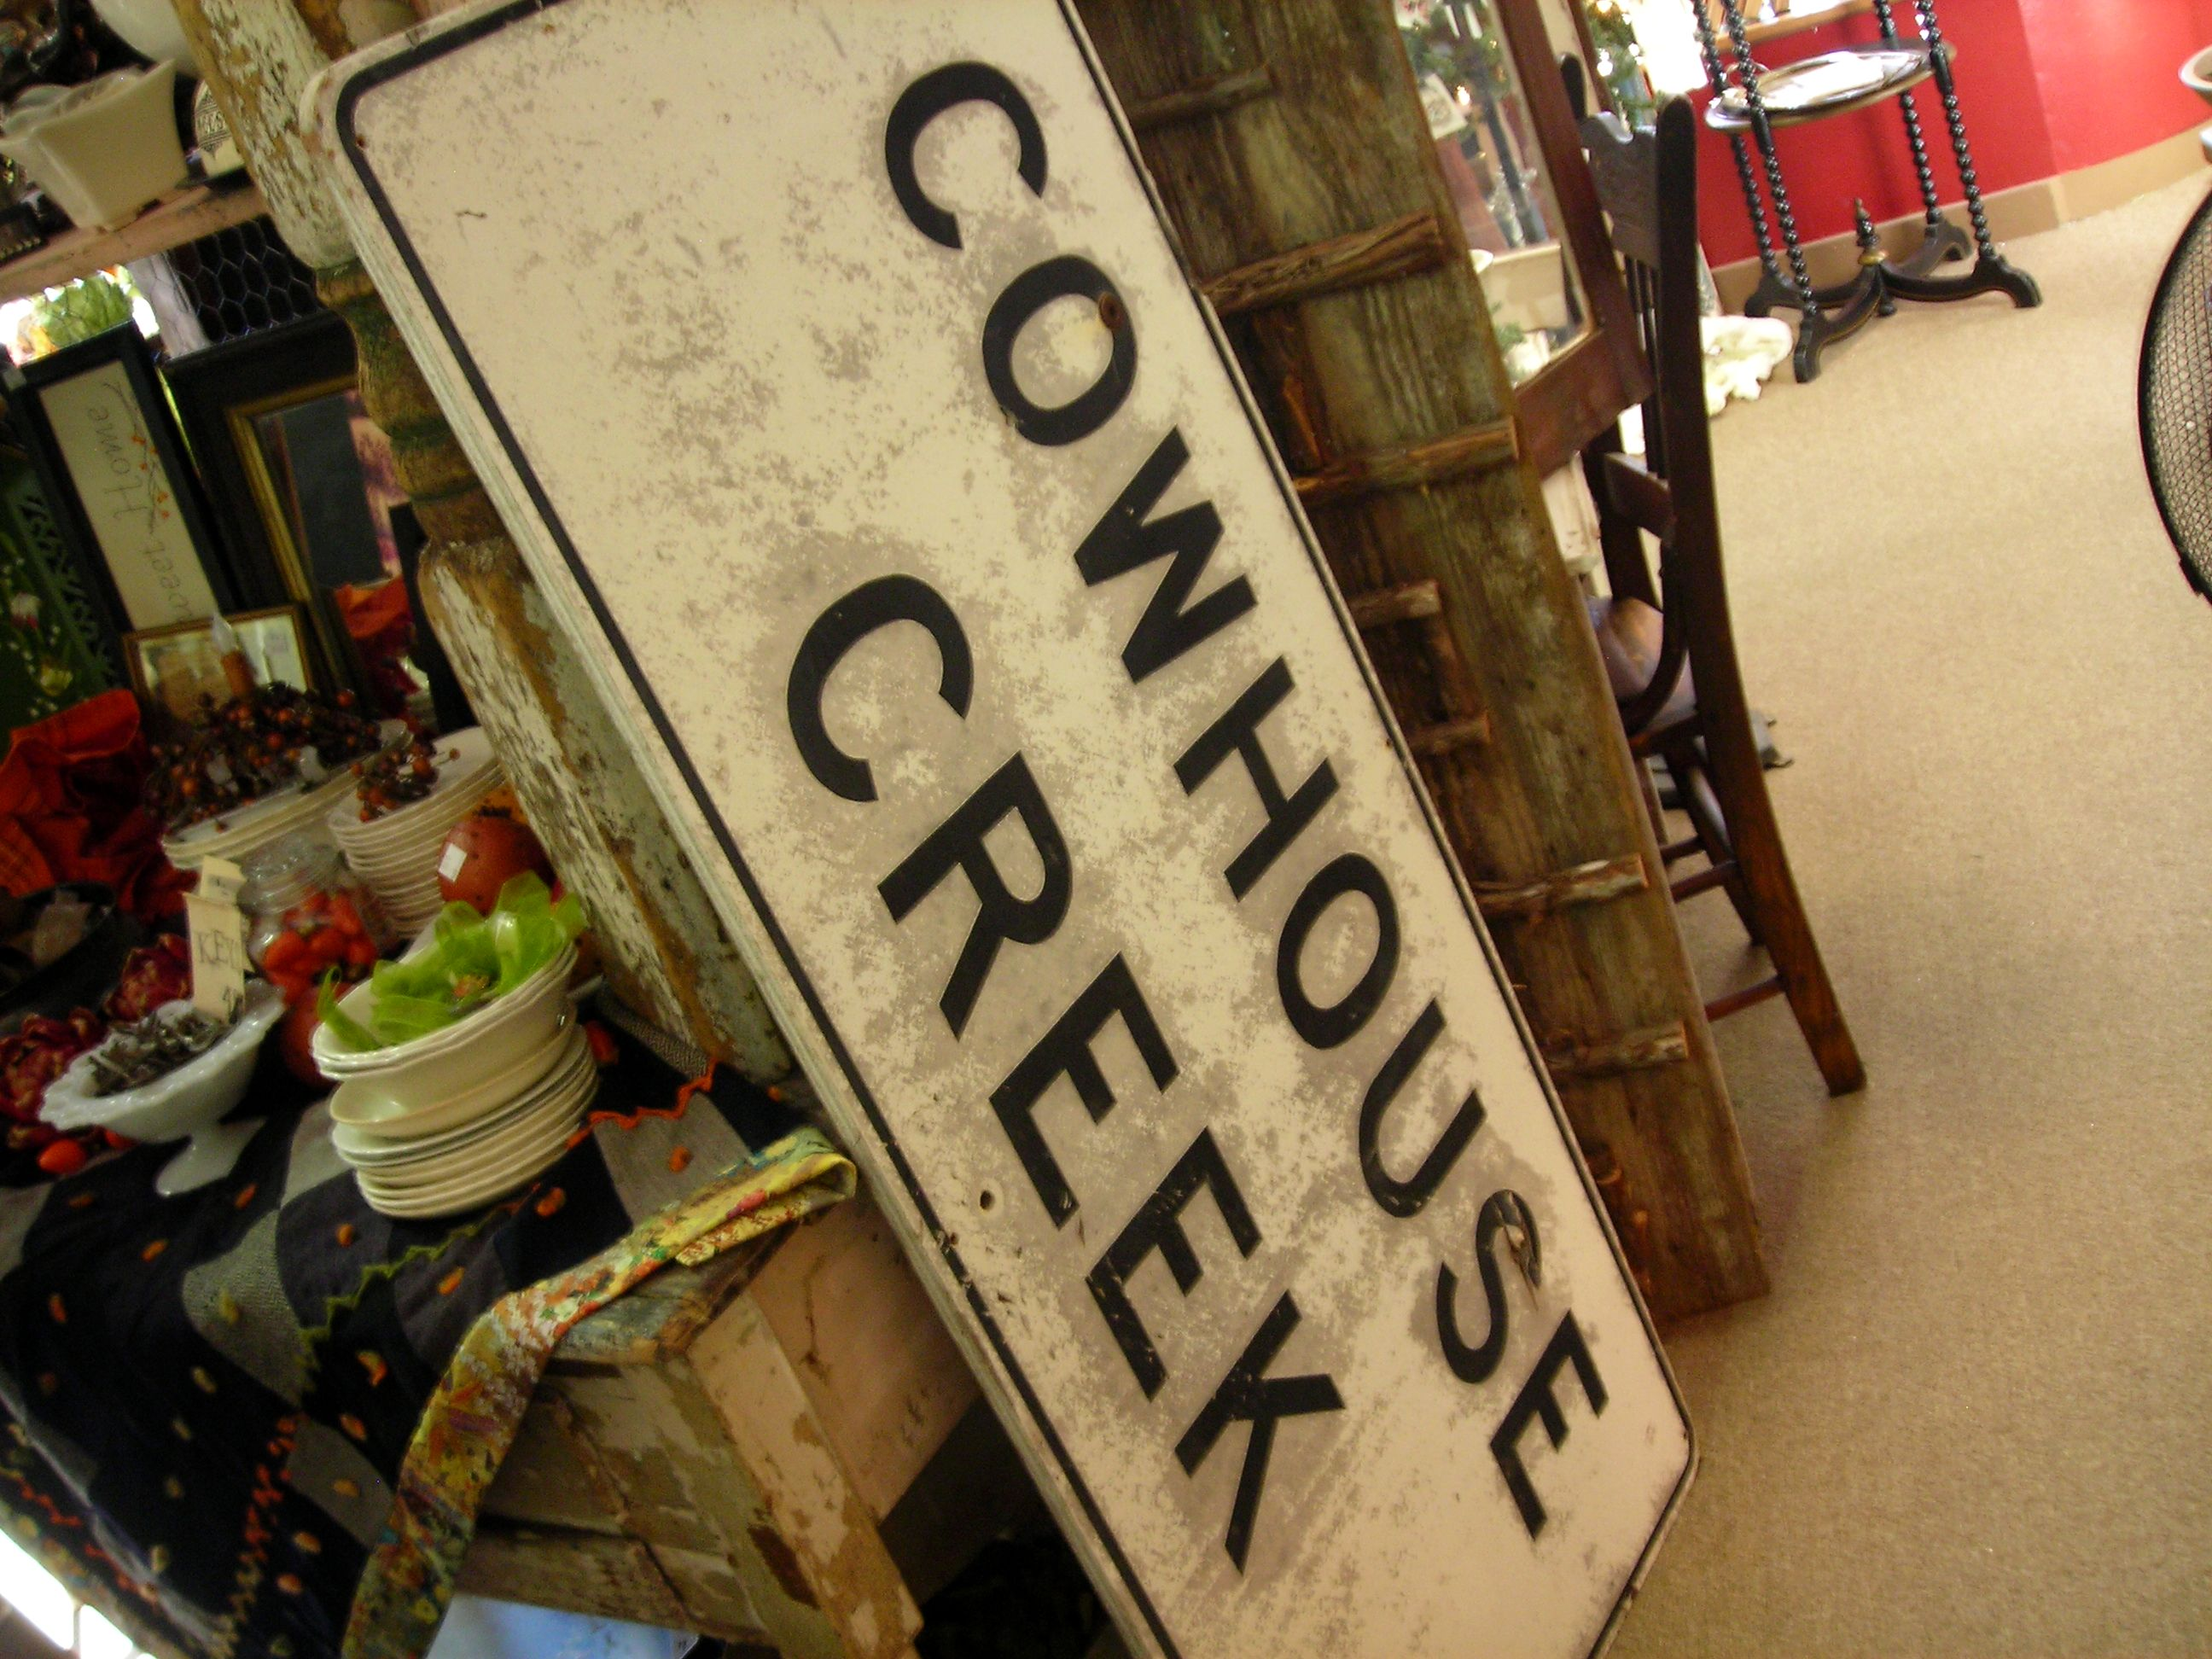 i ADORE this old sign. my daddy taught me to fish off the banks of cowhouse creek. love it!!